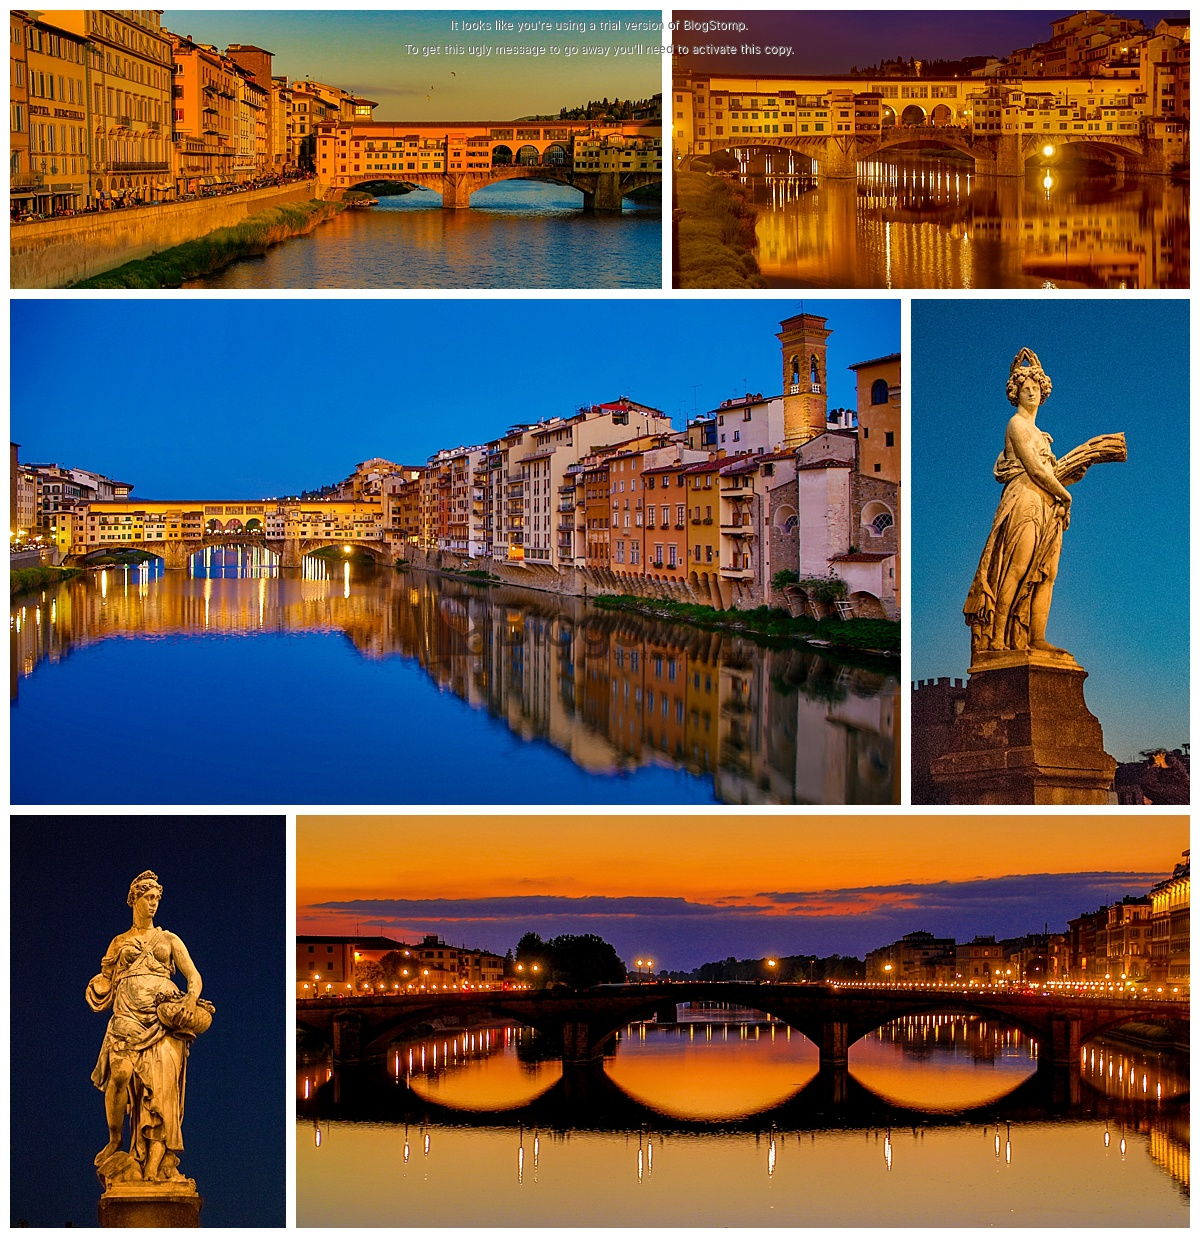 Florence, Italy bridge sunset